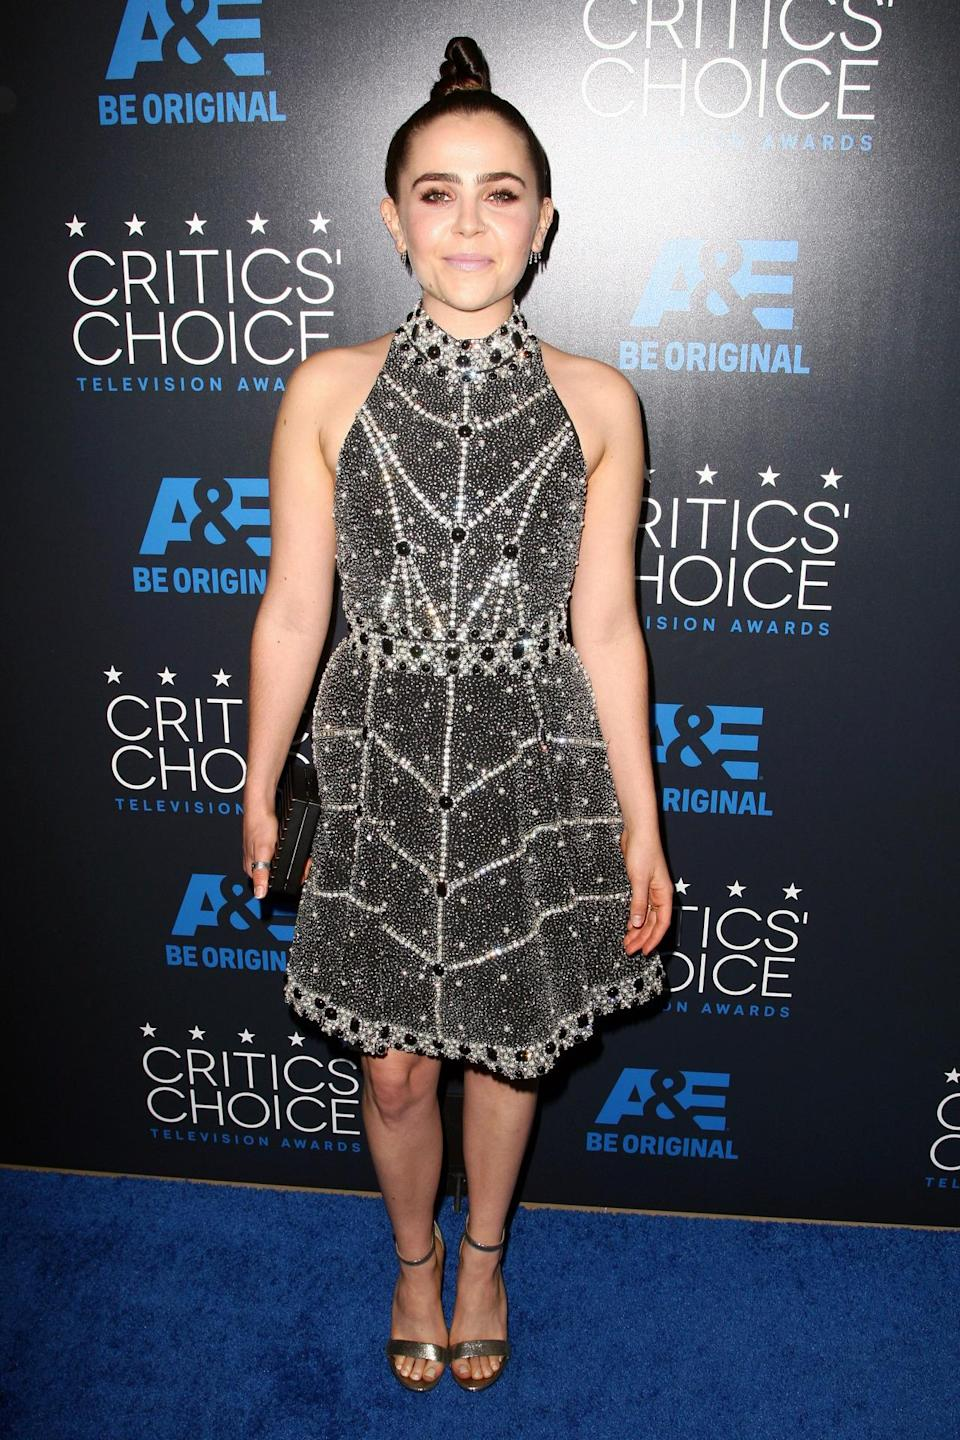 "Mae Whitman, who was nominated for best supporting actress in a drama series for her role on ""Parenthood,"" might not have taken home the prize (the award went to Lorraine Toussaint for ""Orange Is the New Black"") but her look certainly deserves accolades. The top knot is too cool and the mini dress, which is completely covered in pearls and beads, is elaborately awesome."